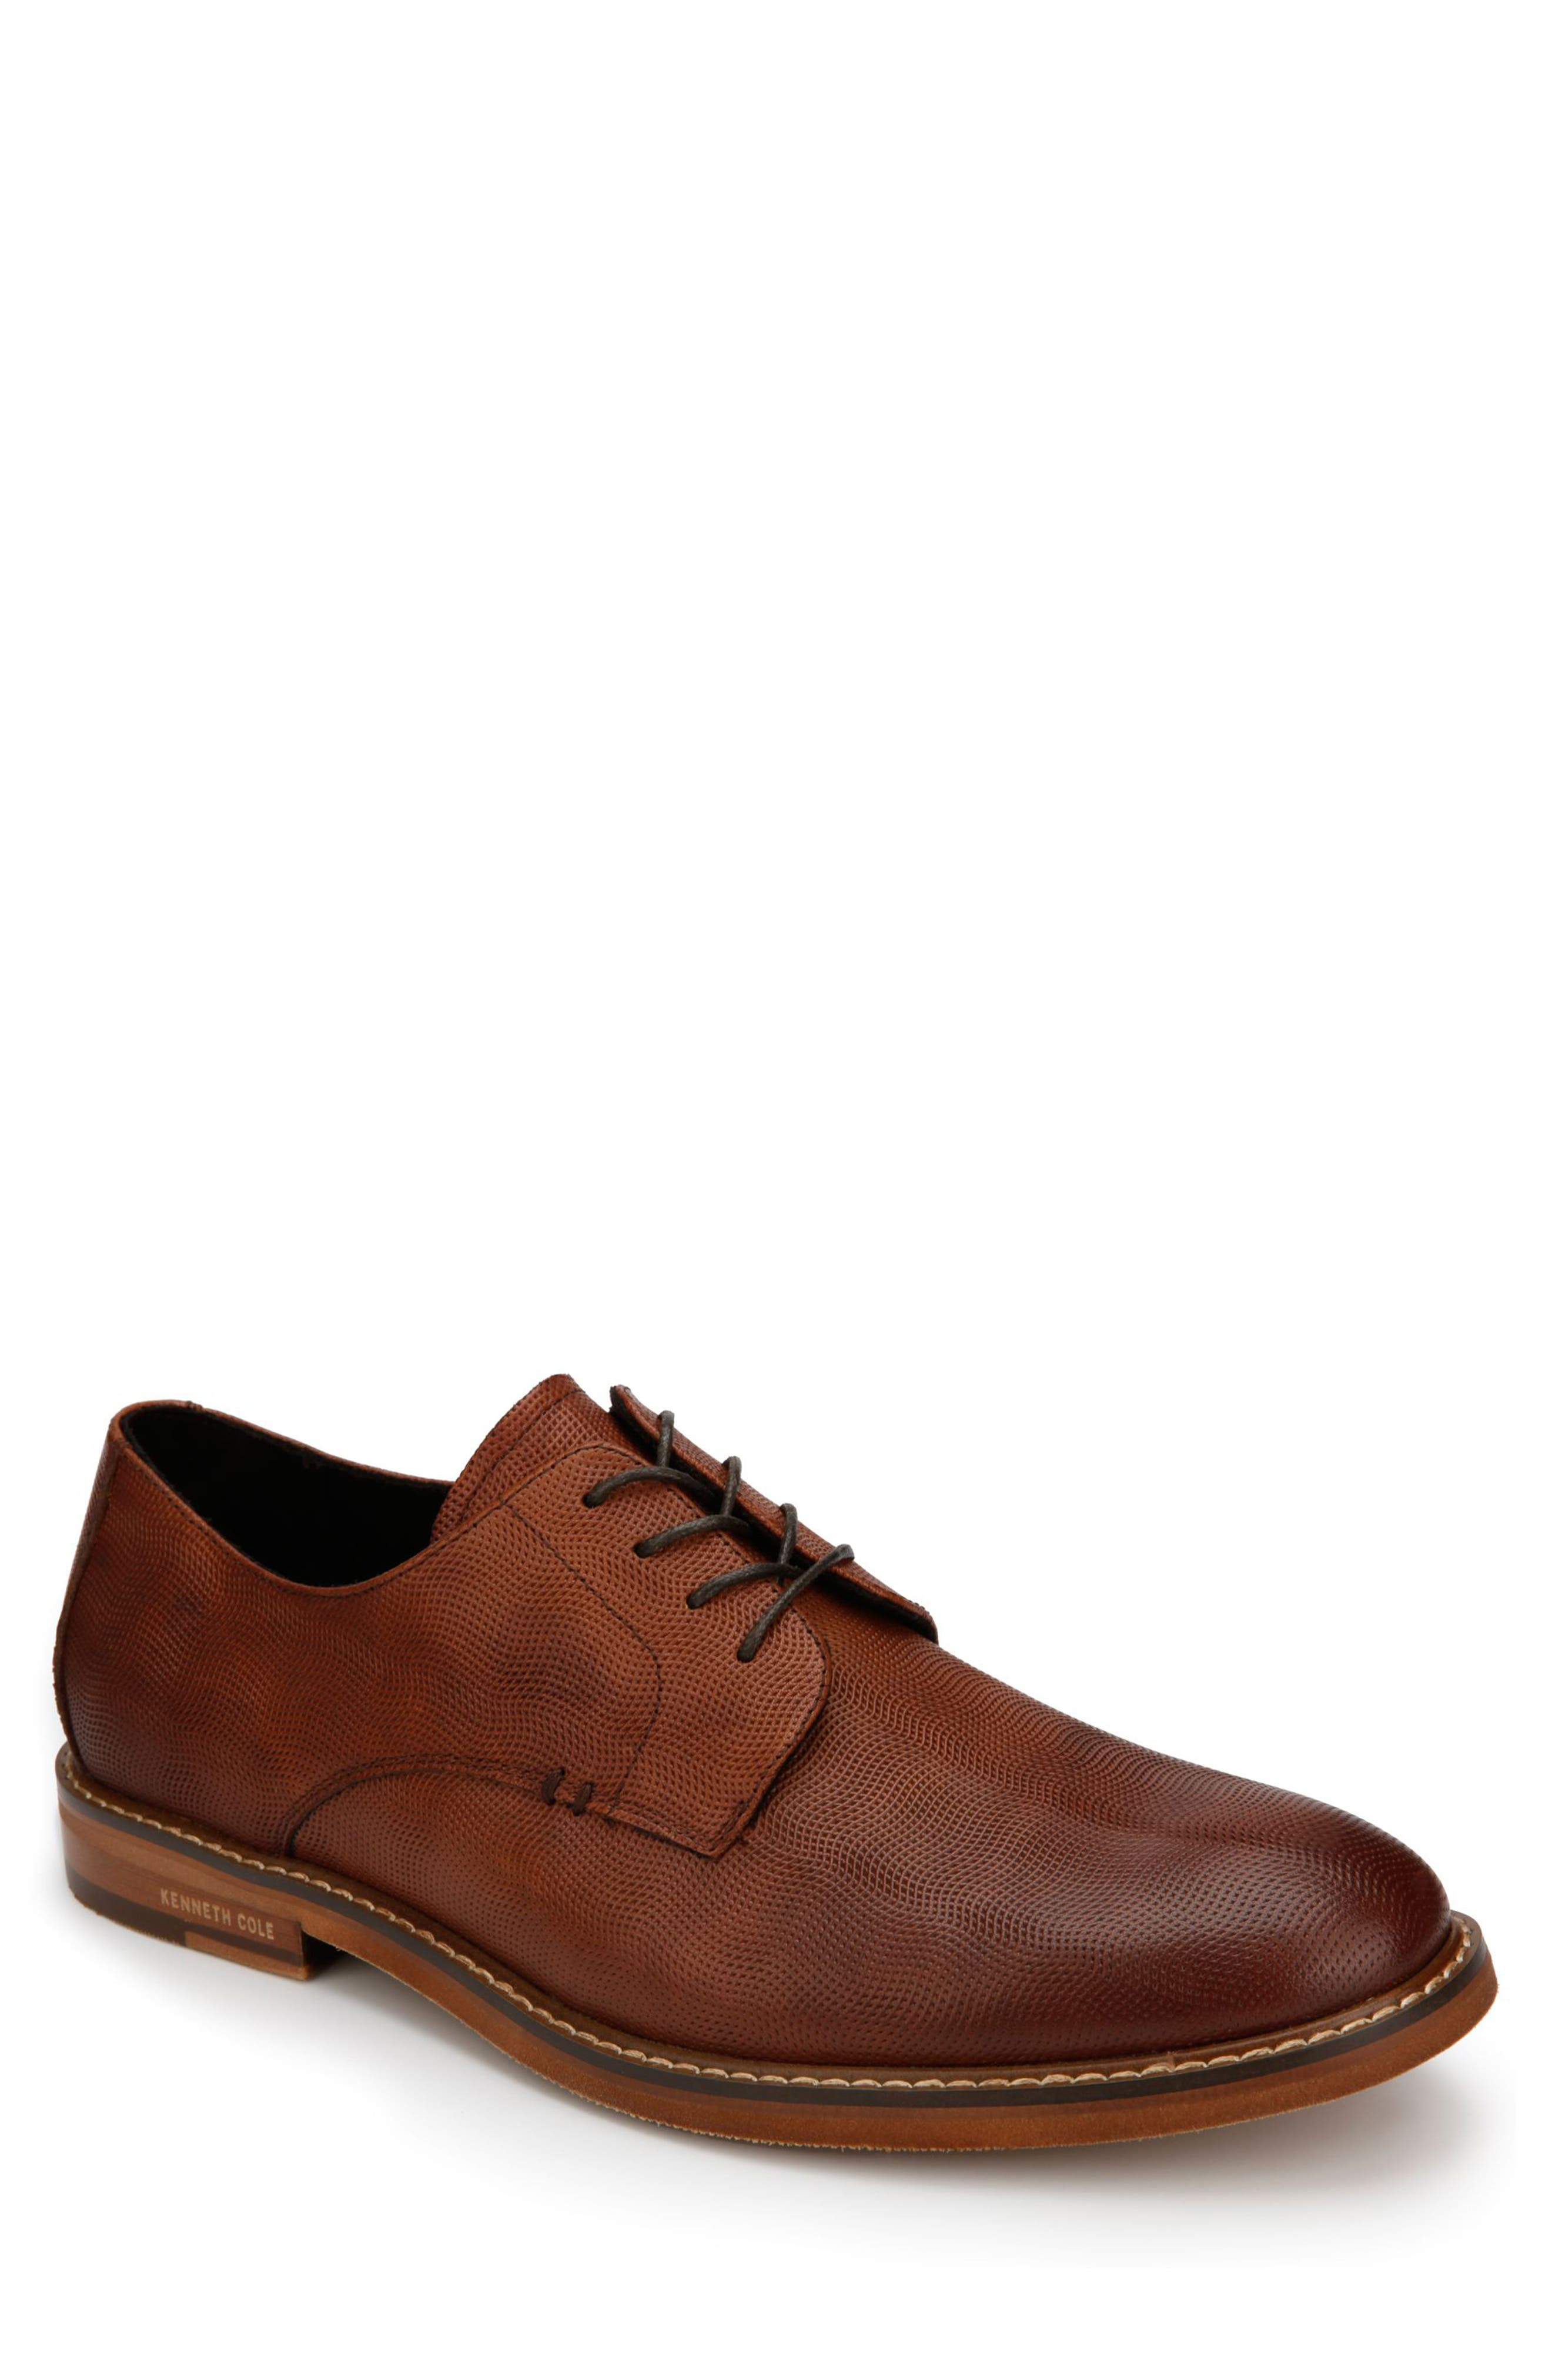 KENNETH COLE NEW YORK, Dance Textured Plain Toe Derby, Main thumbnail 1, color, COGNAC EMBOSSED LEATHER